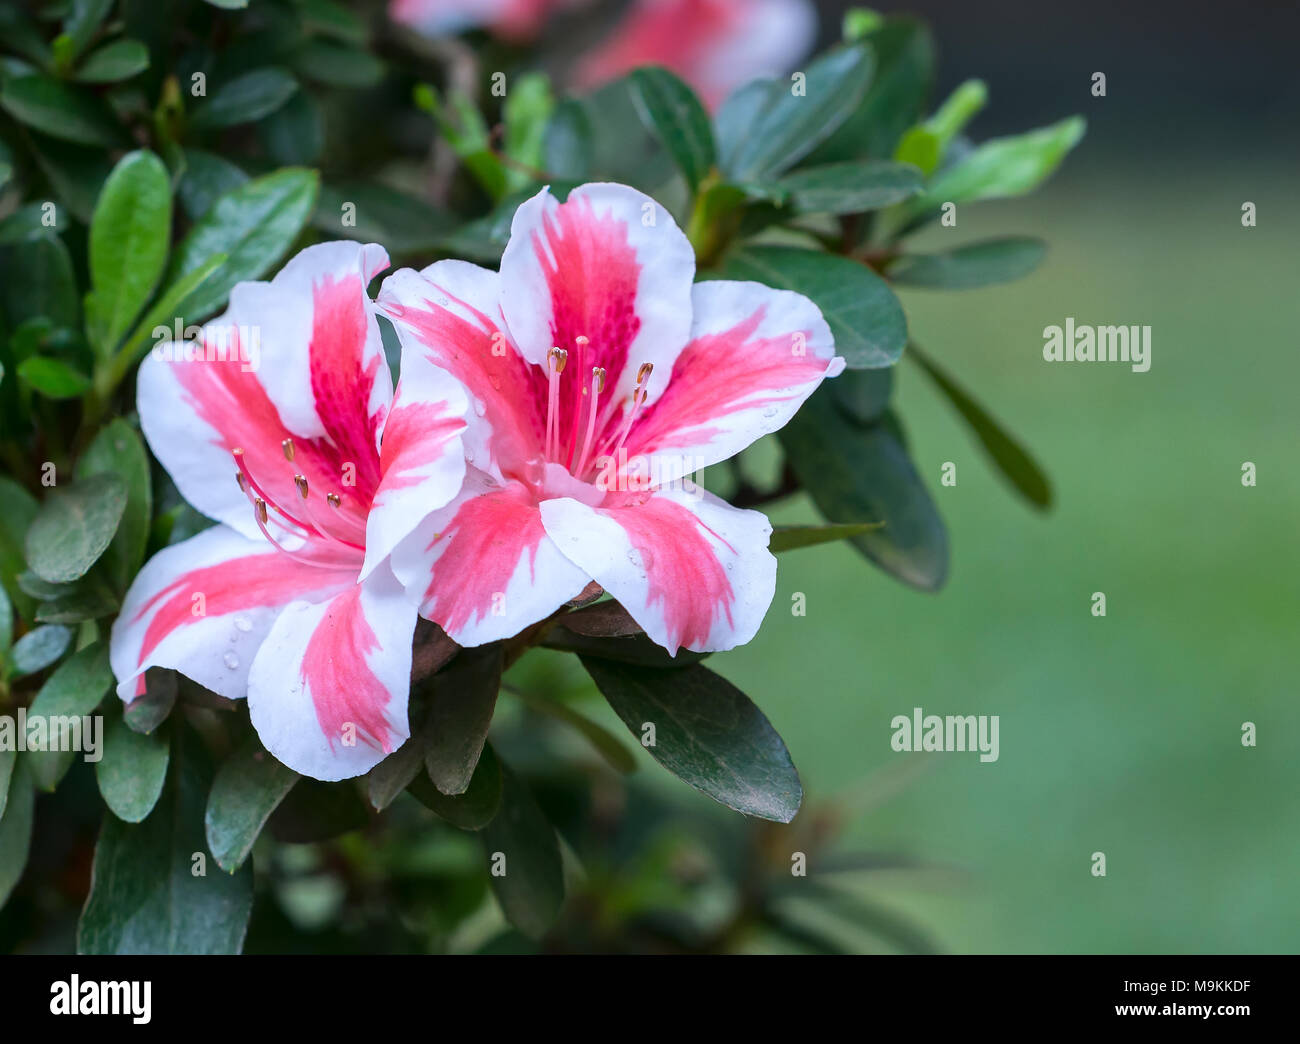 Azalea Flowers Bloom In The Flower Garden In The Early Spring